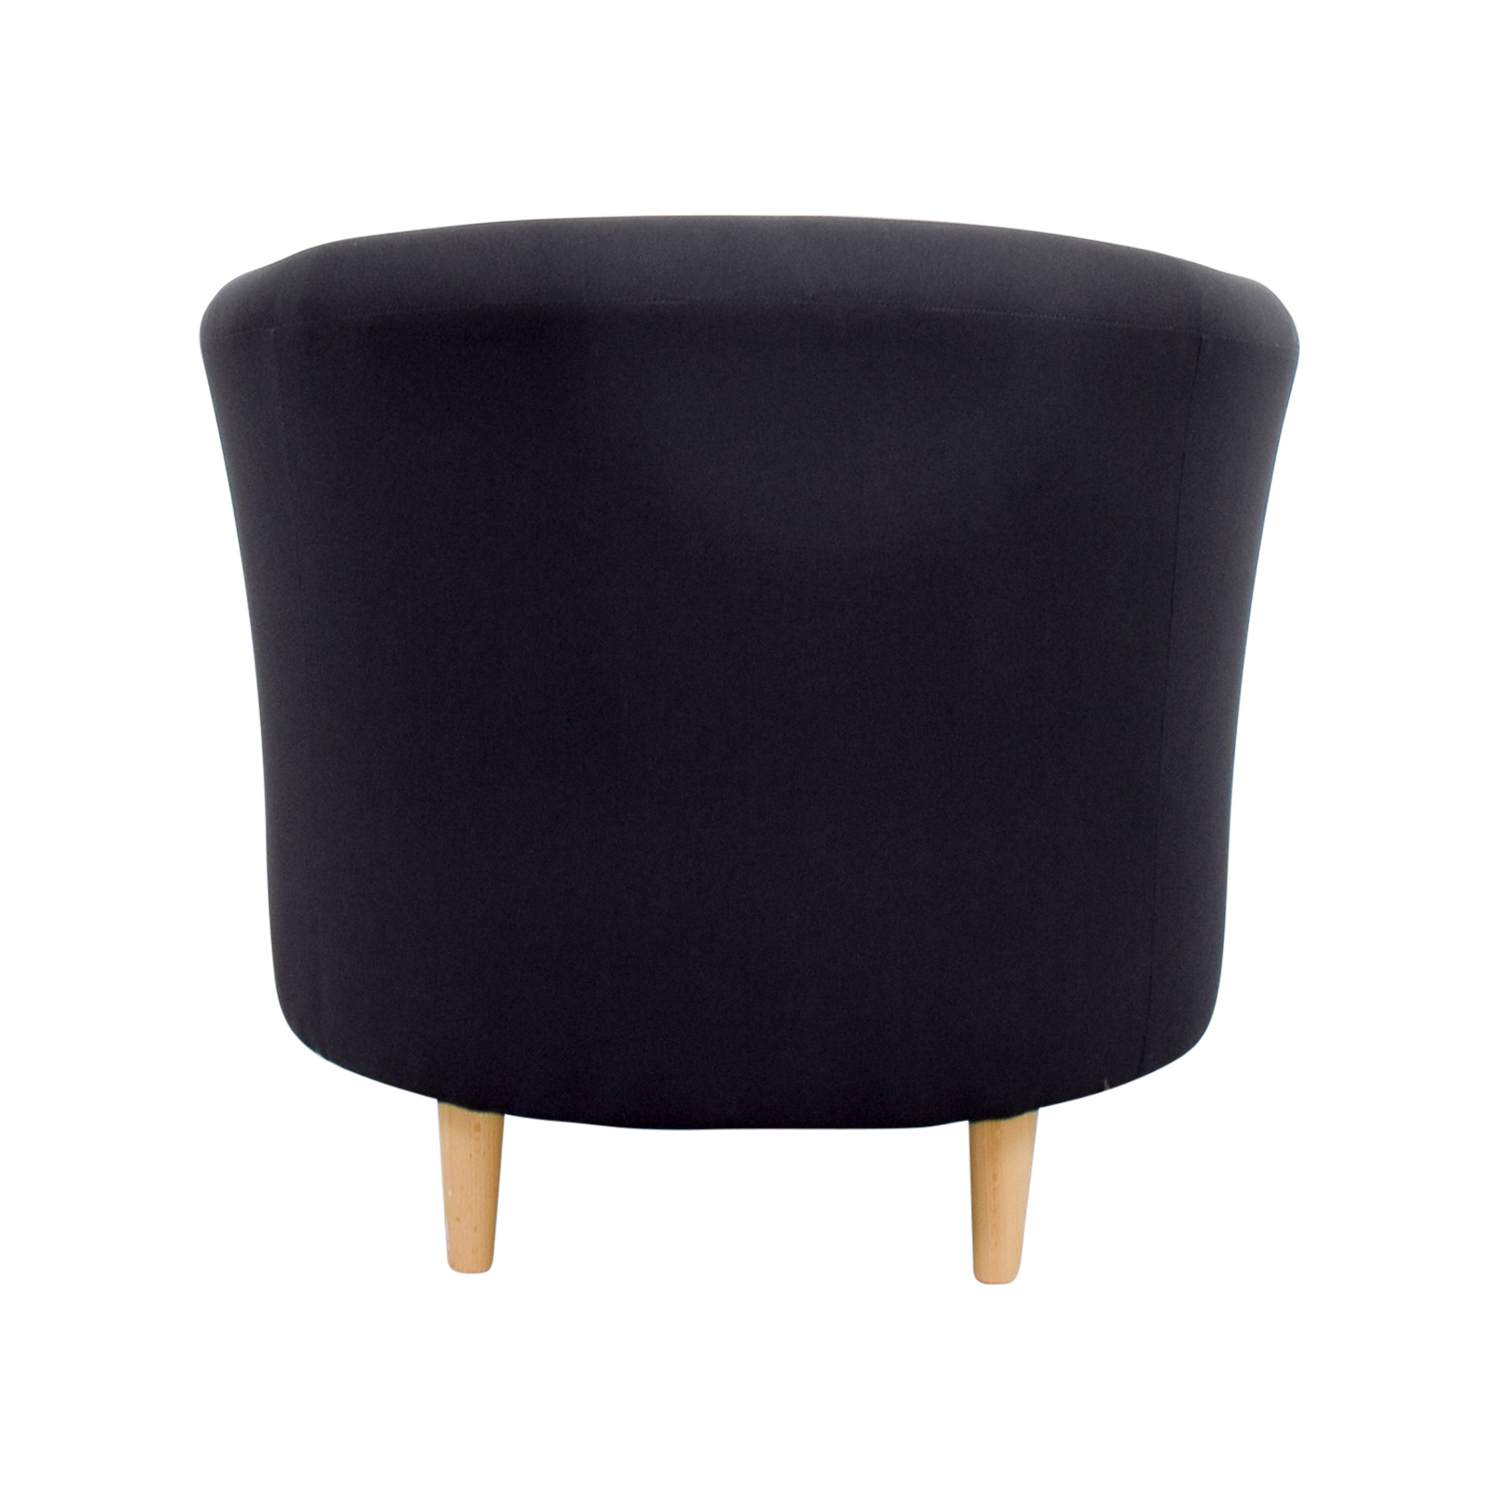 IKEA IKEA Tullsta Armchair coupon